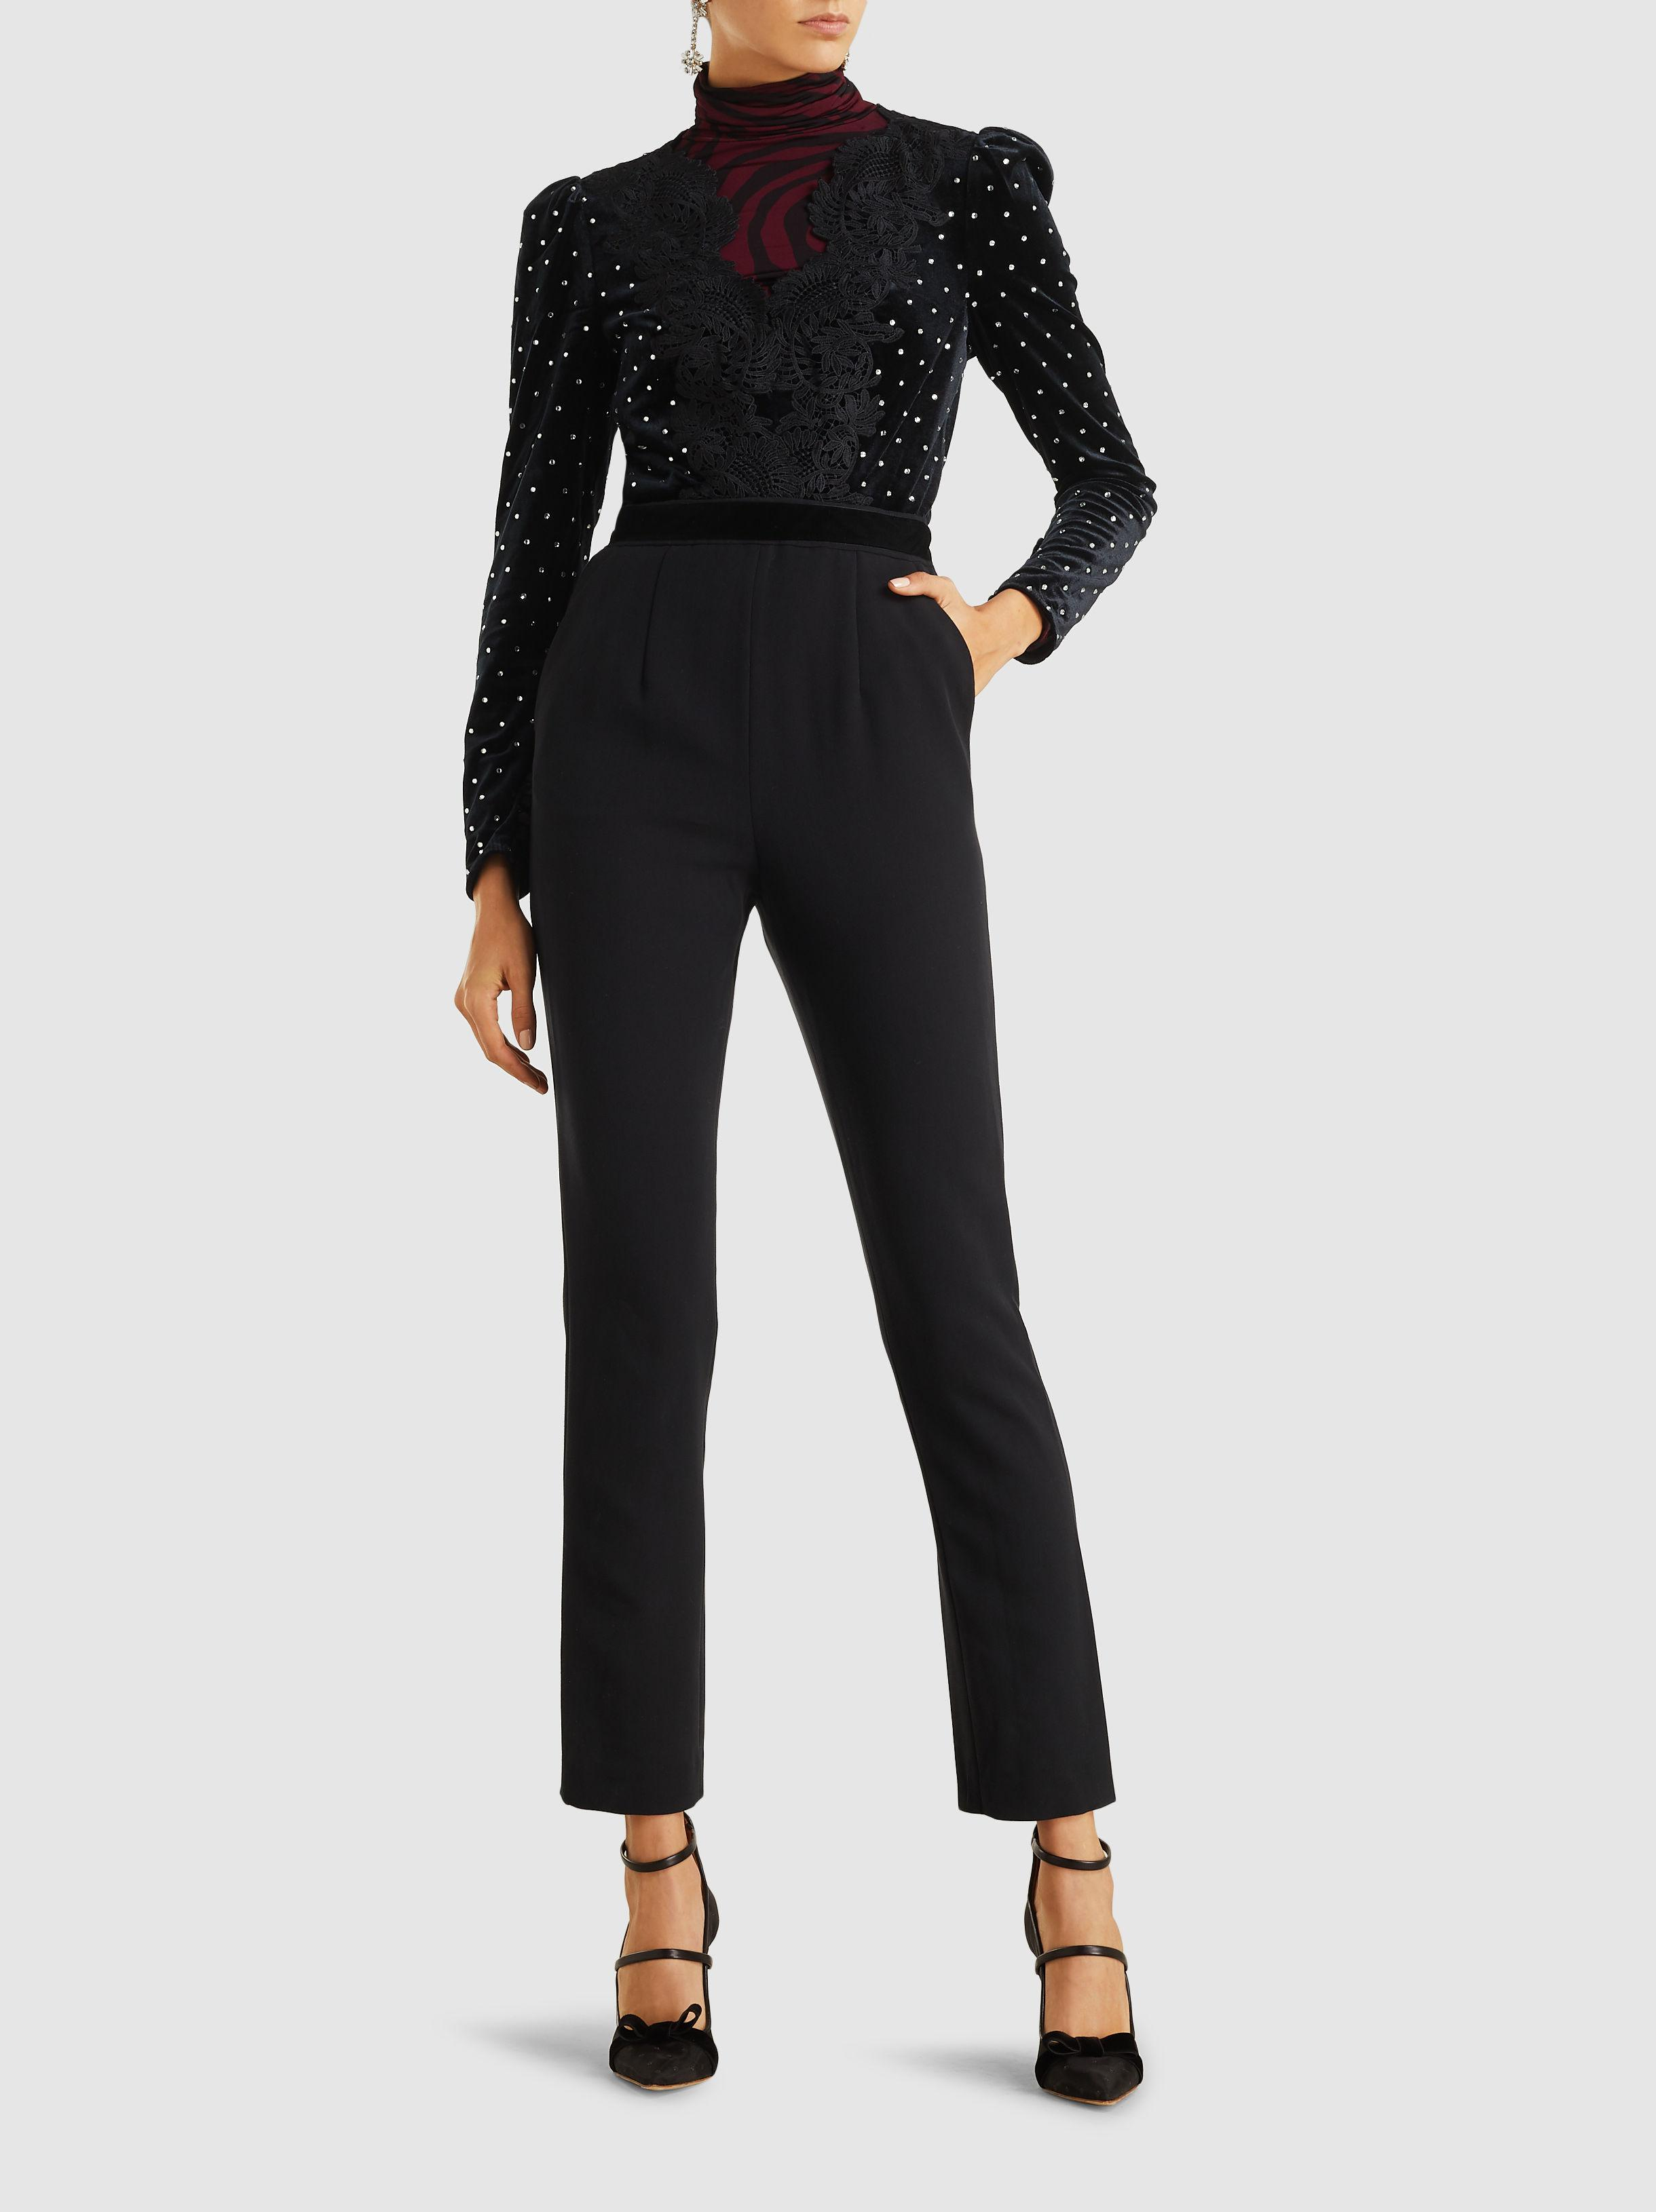 f606d5762f55 Self-Portrait - Black Jumpsuit With Crystals And Lace - Lyst. View  fullscreen